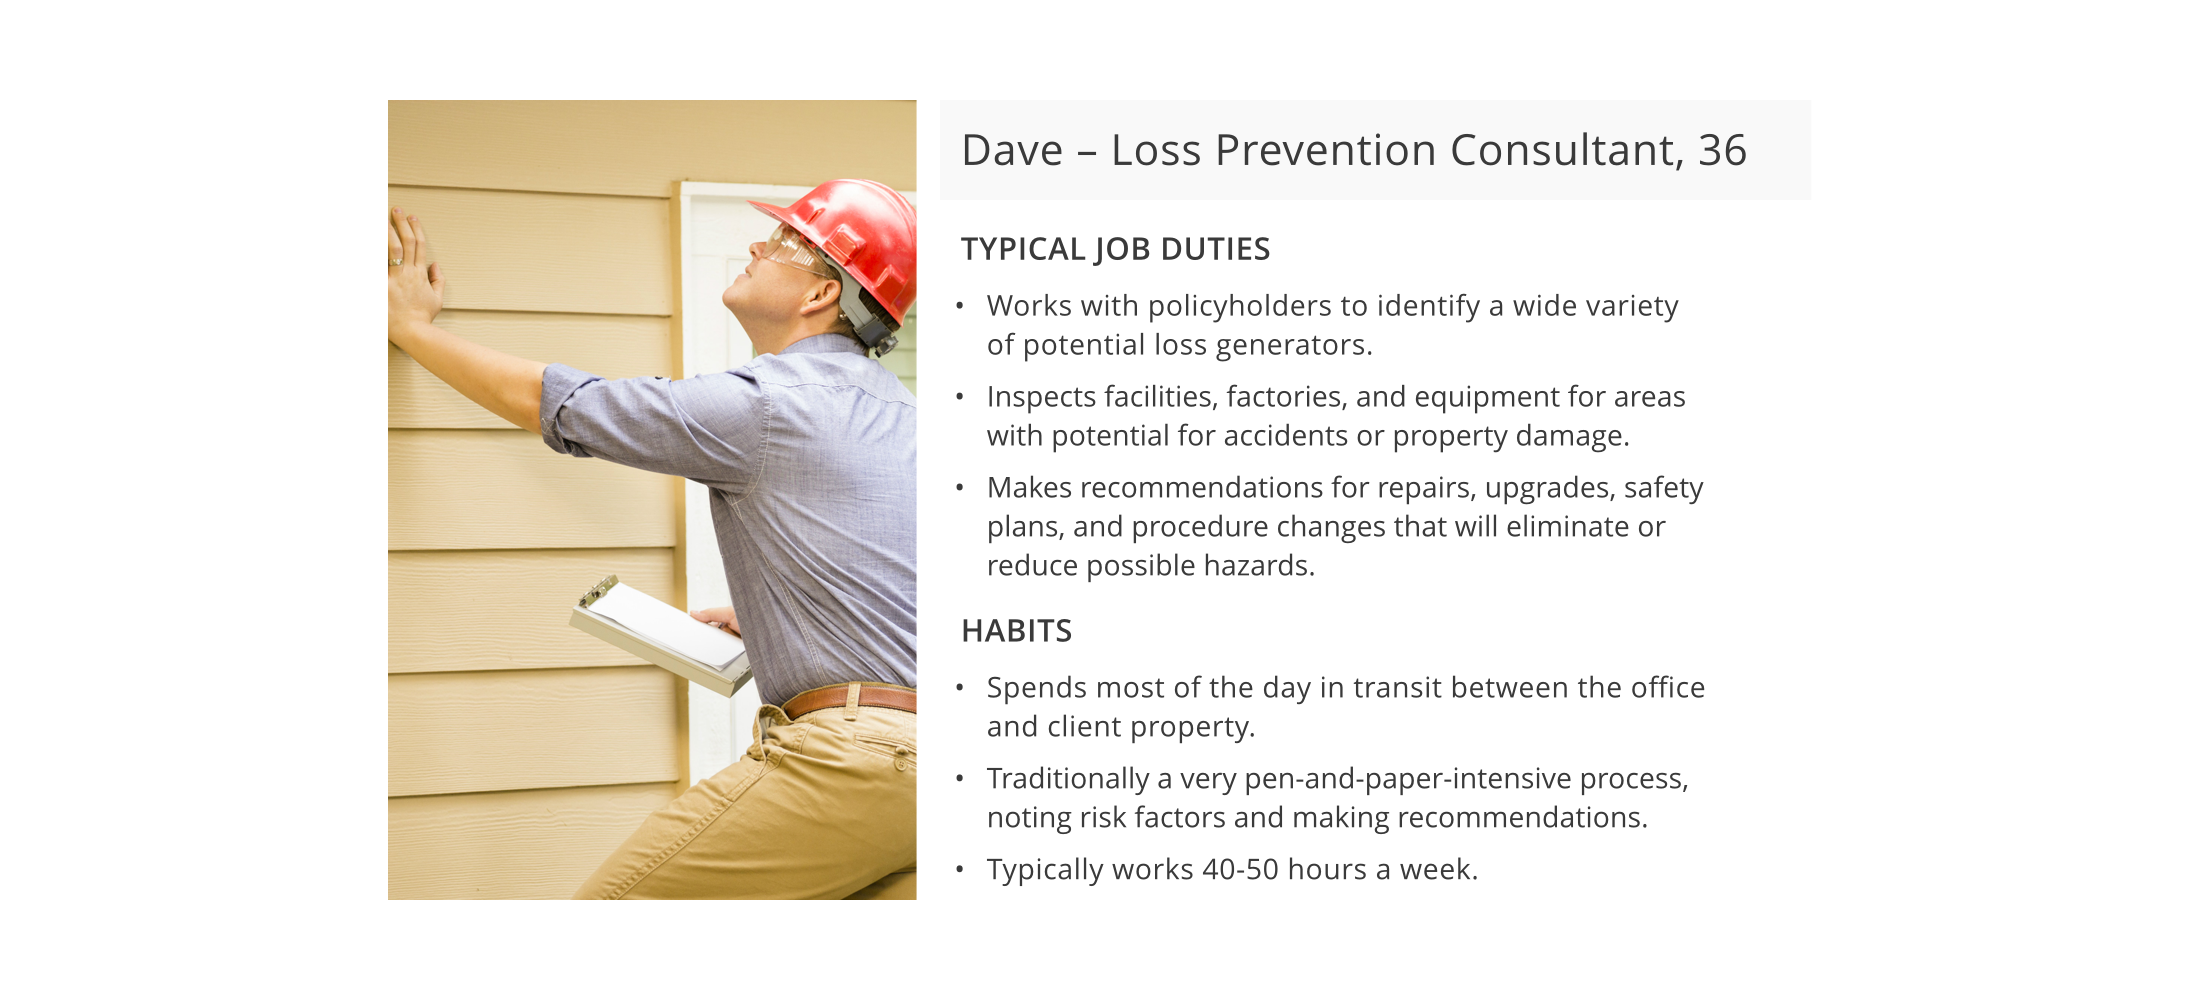 The the target user persona of Dave, a 36-year old loss prevention consultant.